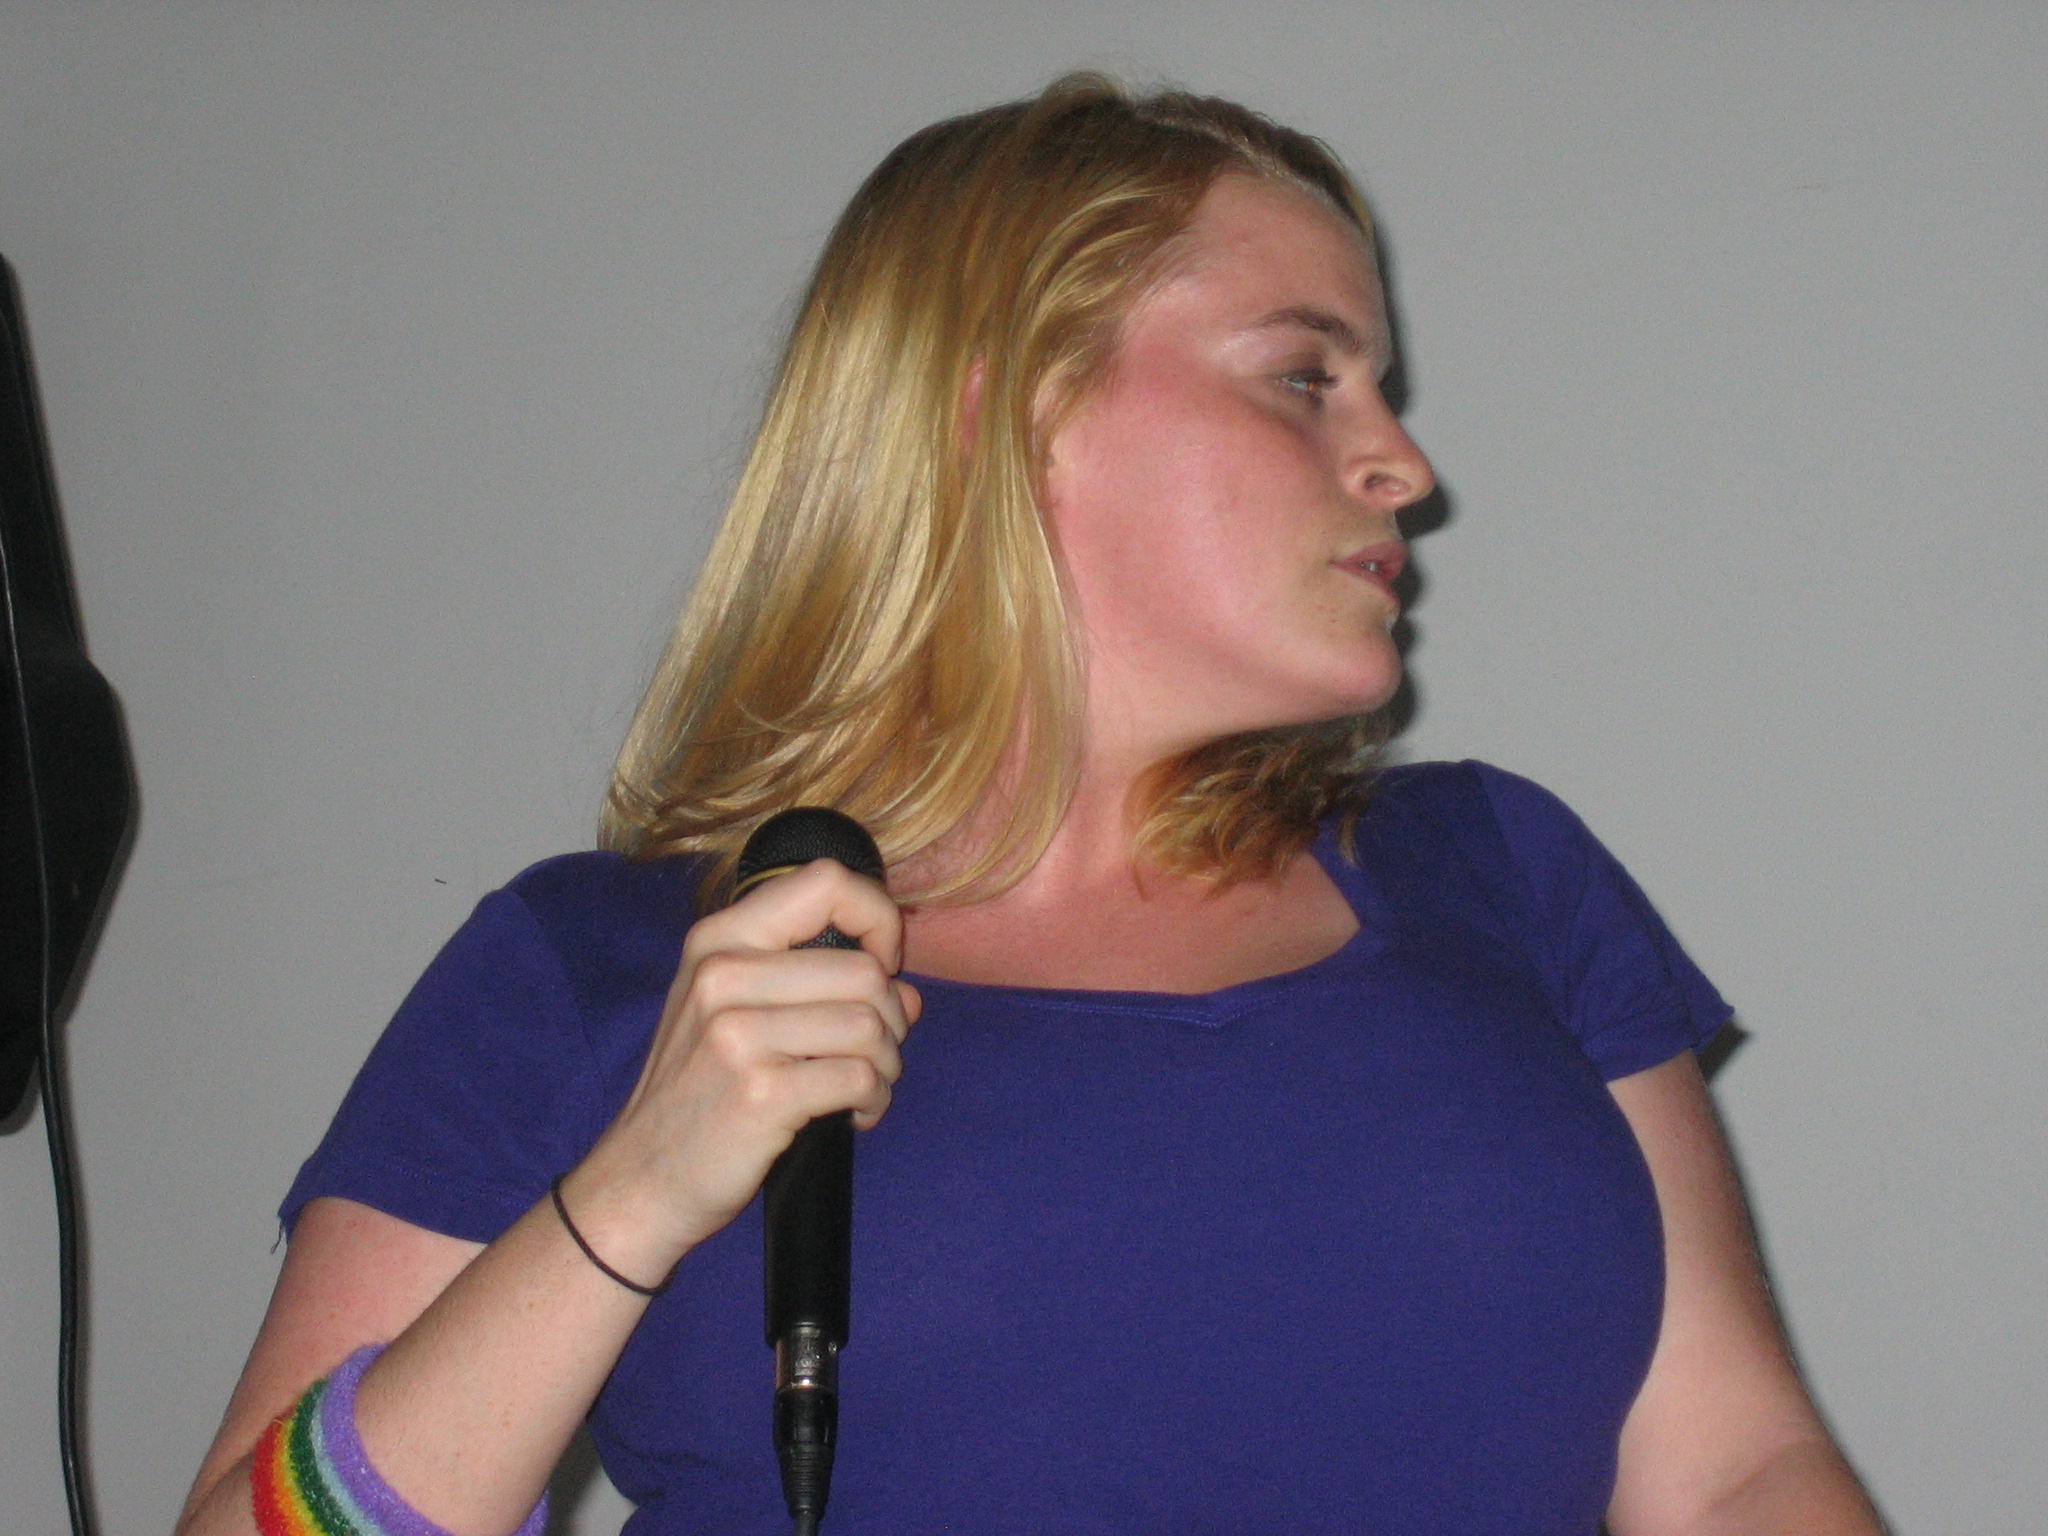 Performing at Cat's birthday party